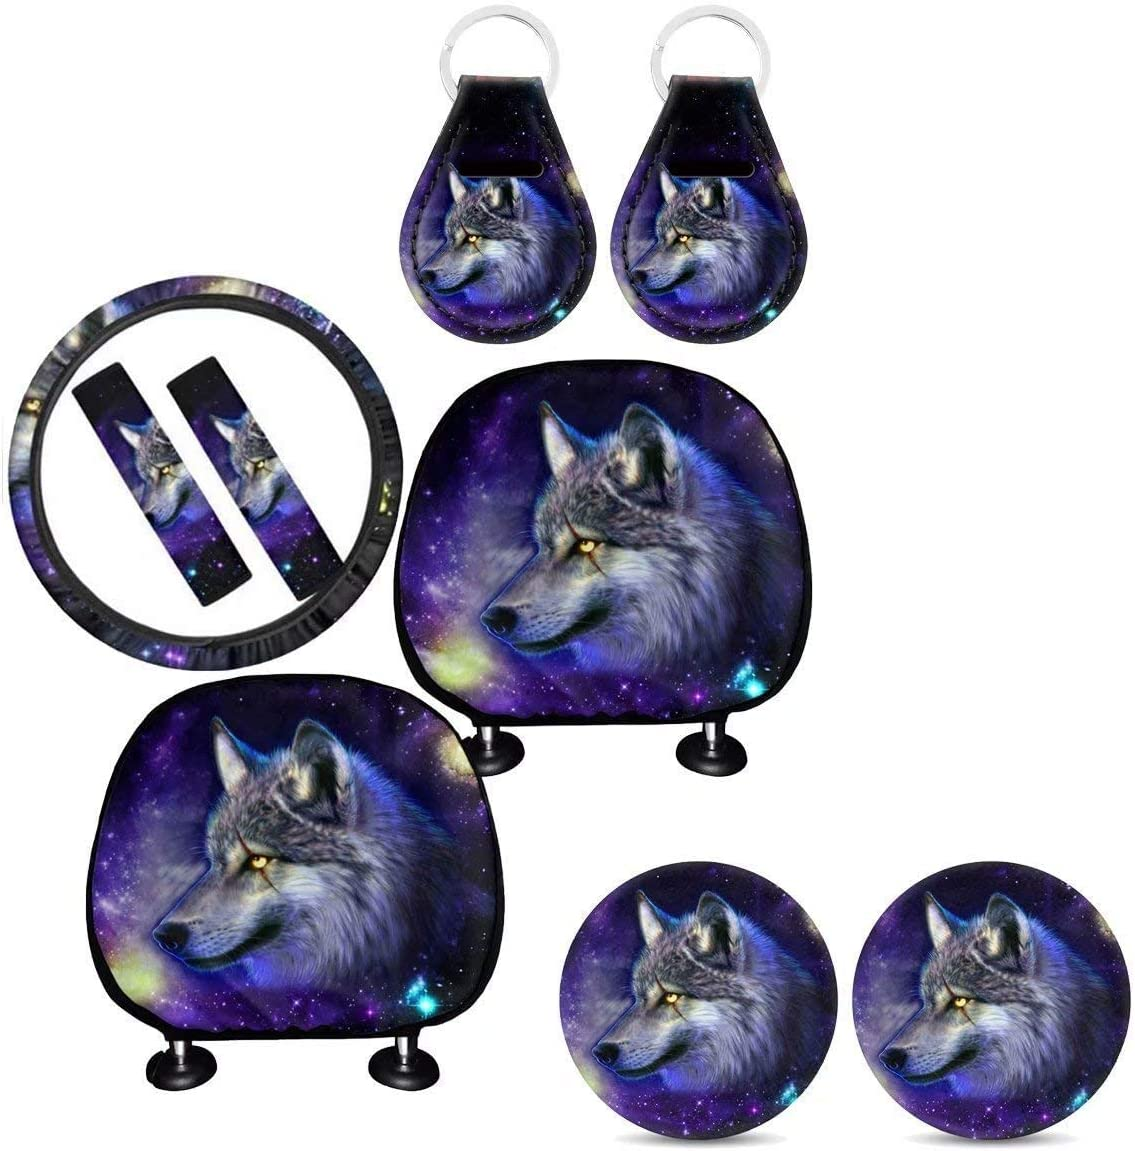 Steering Wheel Cover chaqlin Purple Butterfly Car Interior Decorative Accessories Full Set of 9pcs Seat Belt Pads+Keyring+Cup Holder Coaster Washable Universal Fit Headrest Cover